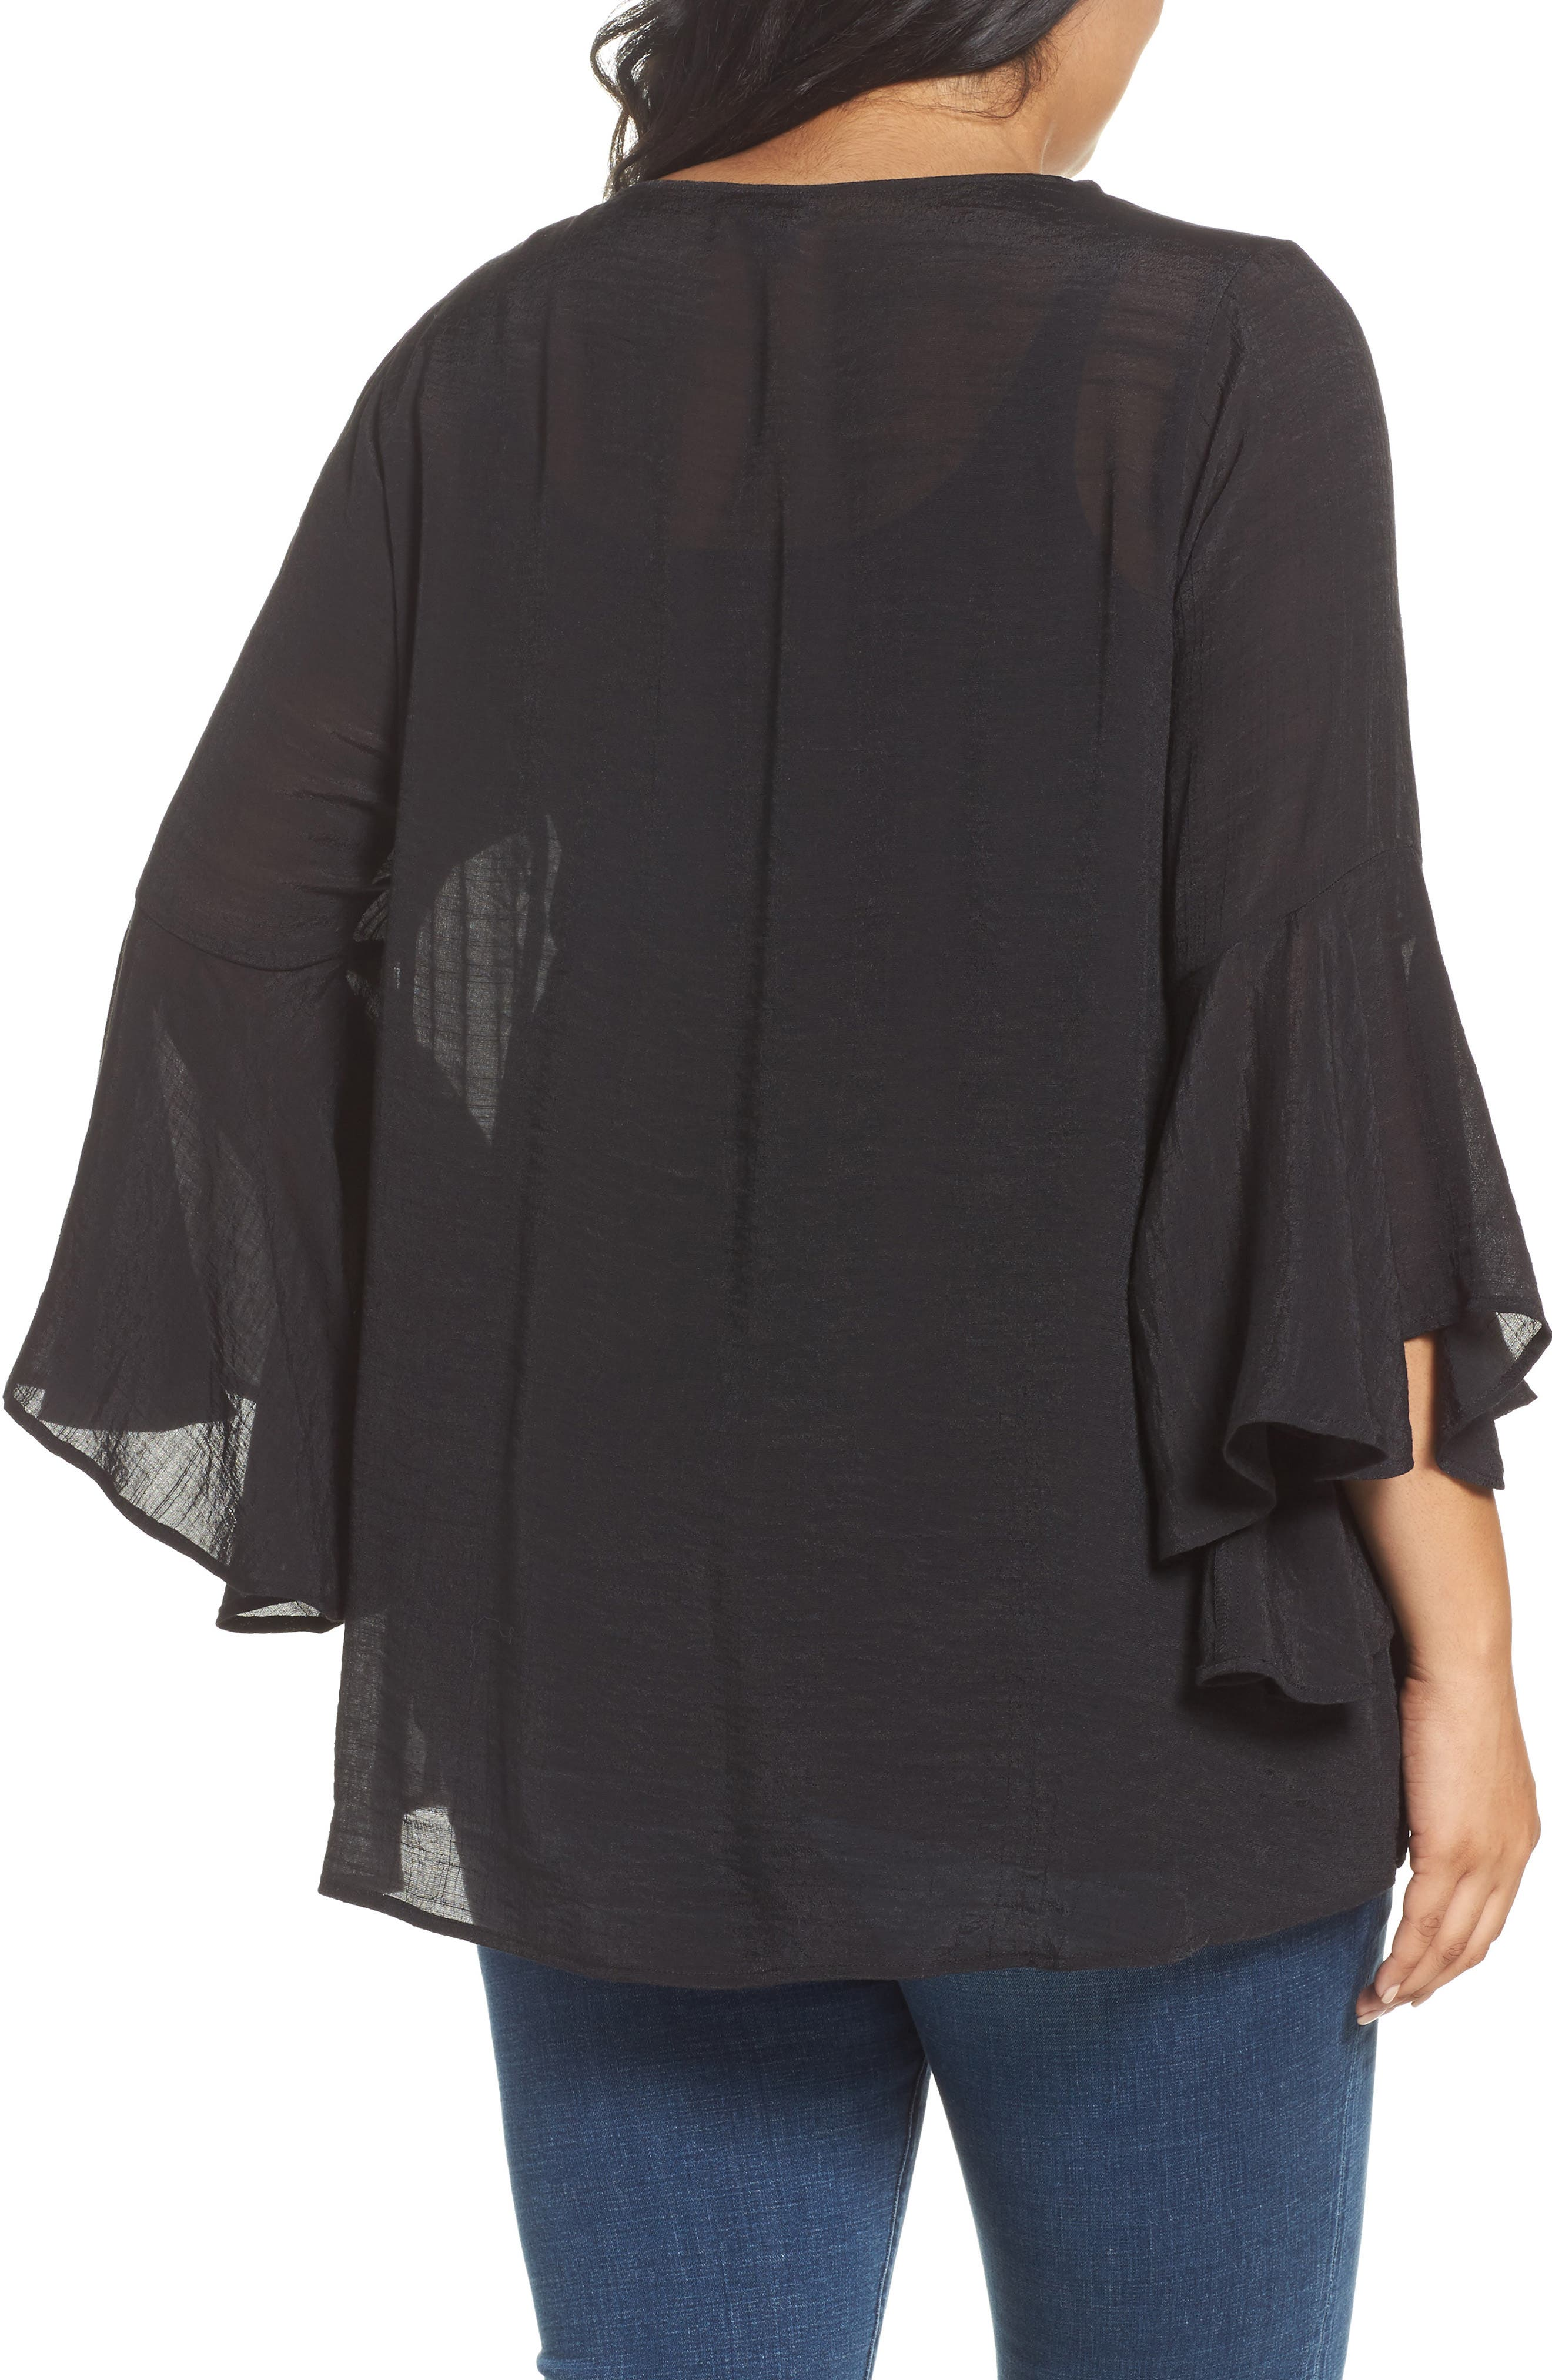 Bell Sleeve Peasant Blouse,                             Alternate thumbnail 2, color,                             Black